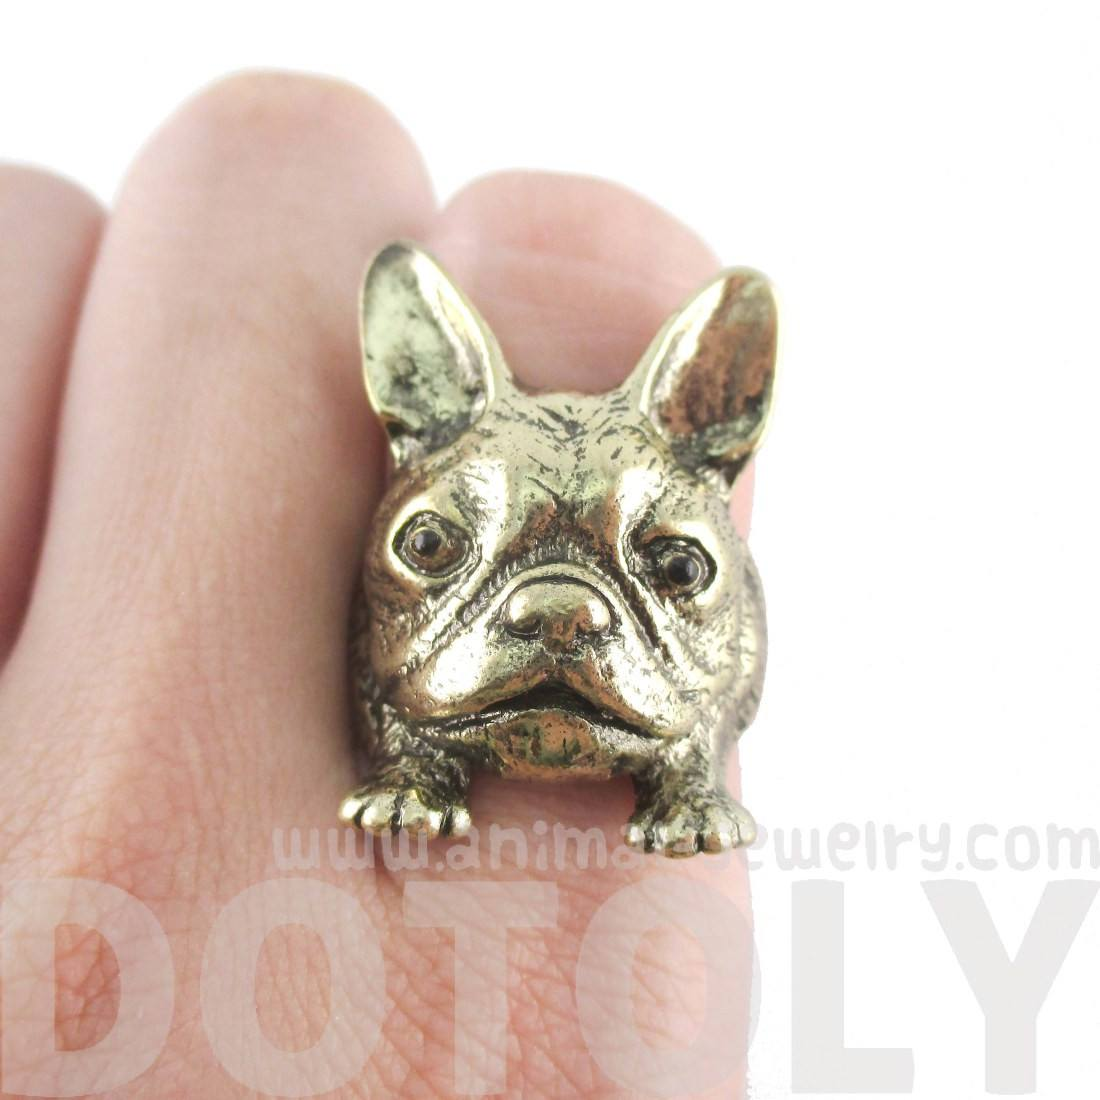 French Bulldog Puppy Head Shaped Animal Ring in Size 6